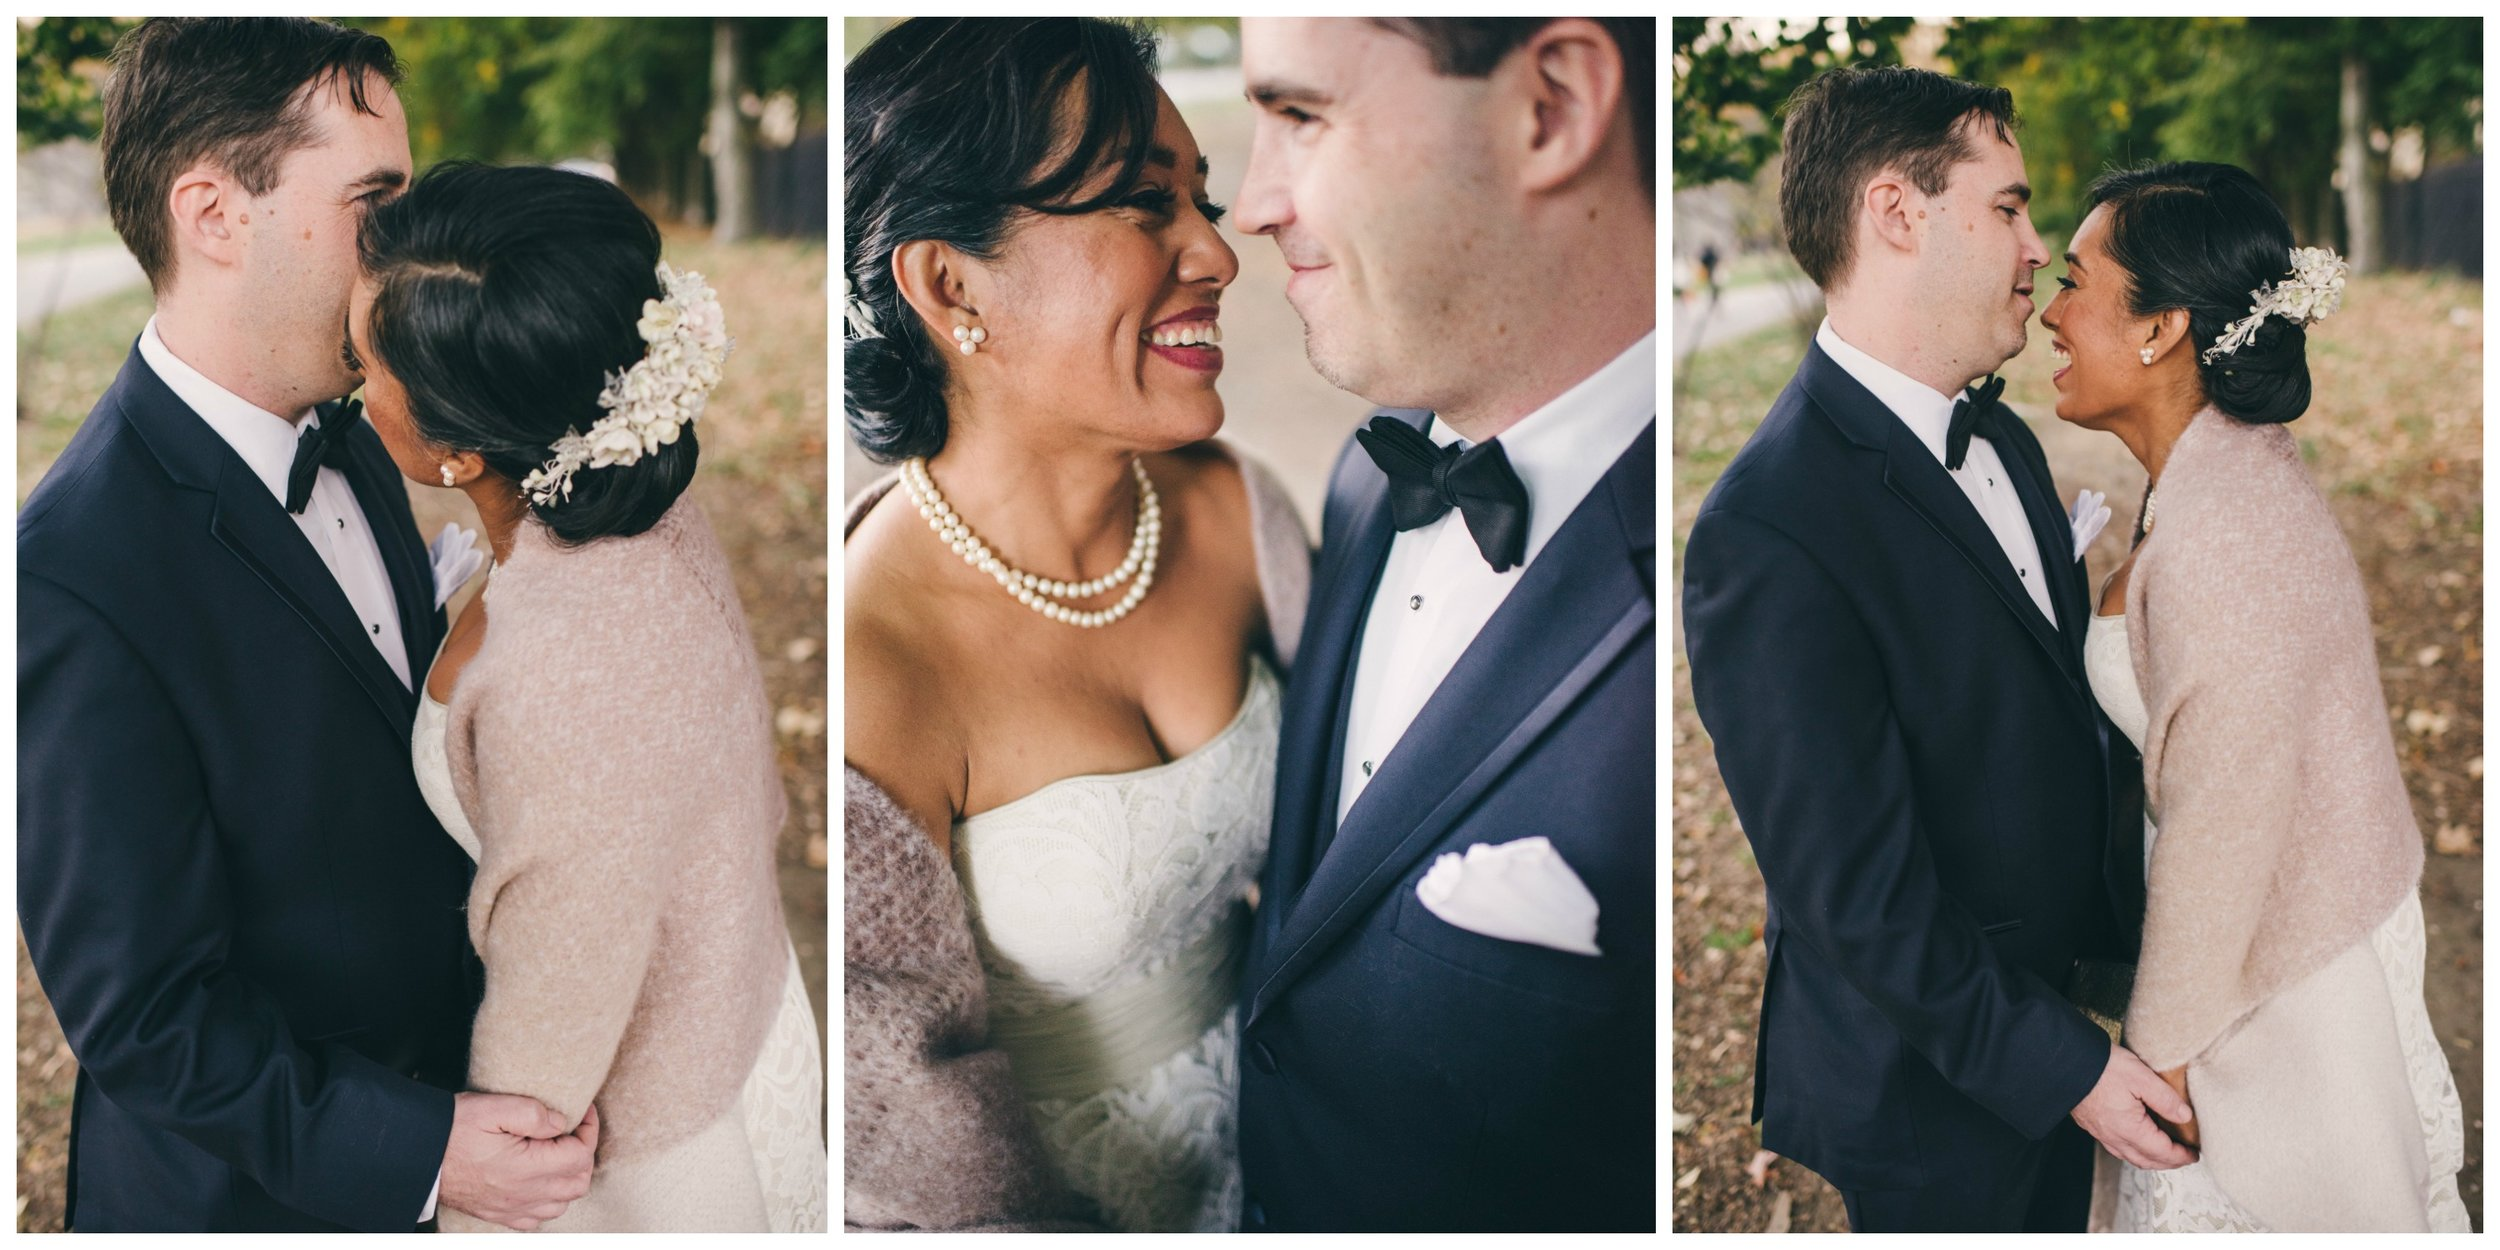 BROOKLYN WINERY WEDDING - TWOTWENTY by CHI-CHI 1.jpg